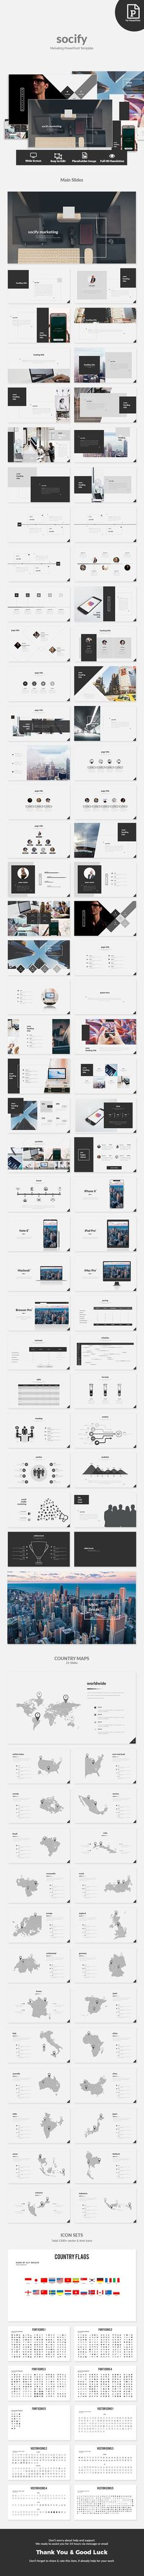 Socify - Marketing PowerPoint Template #powerpoint #template #design